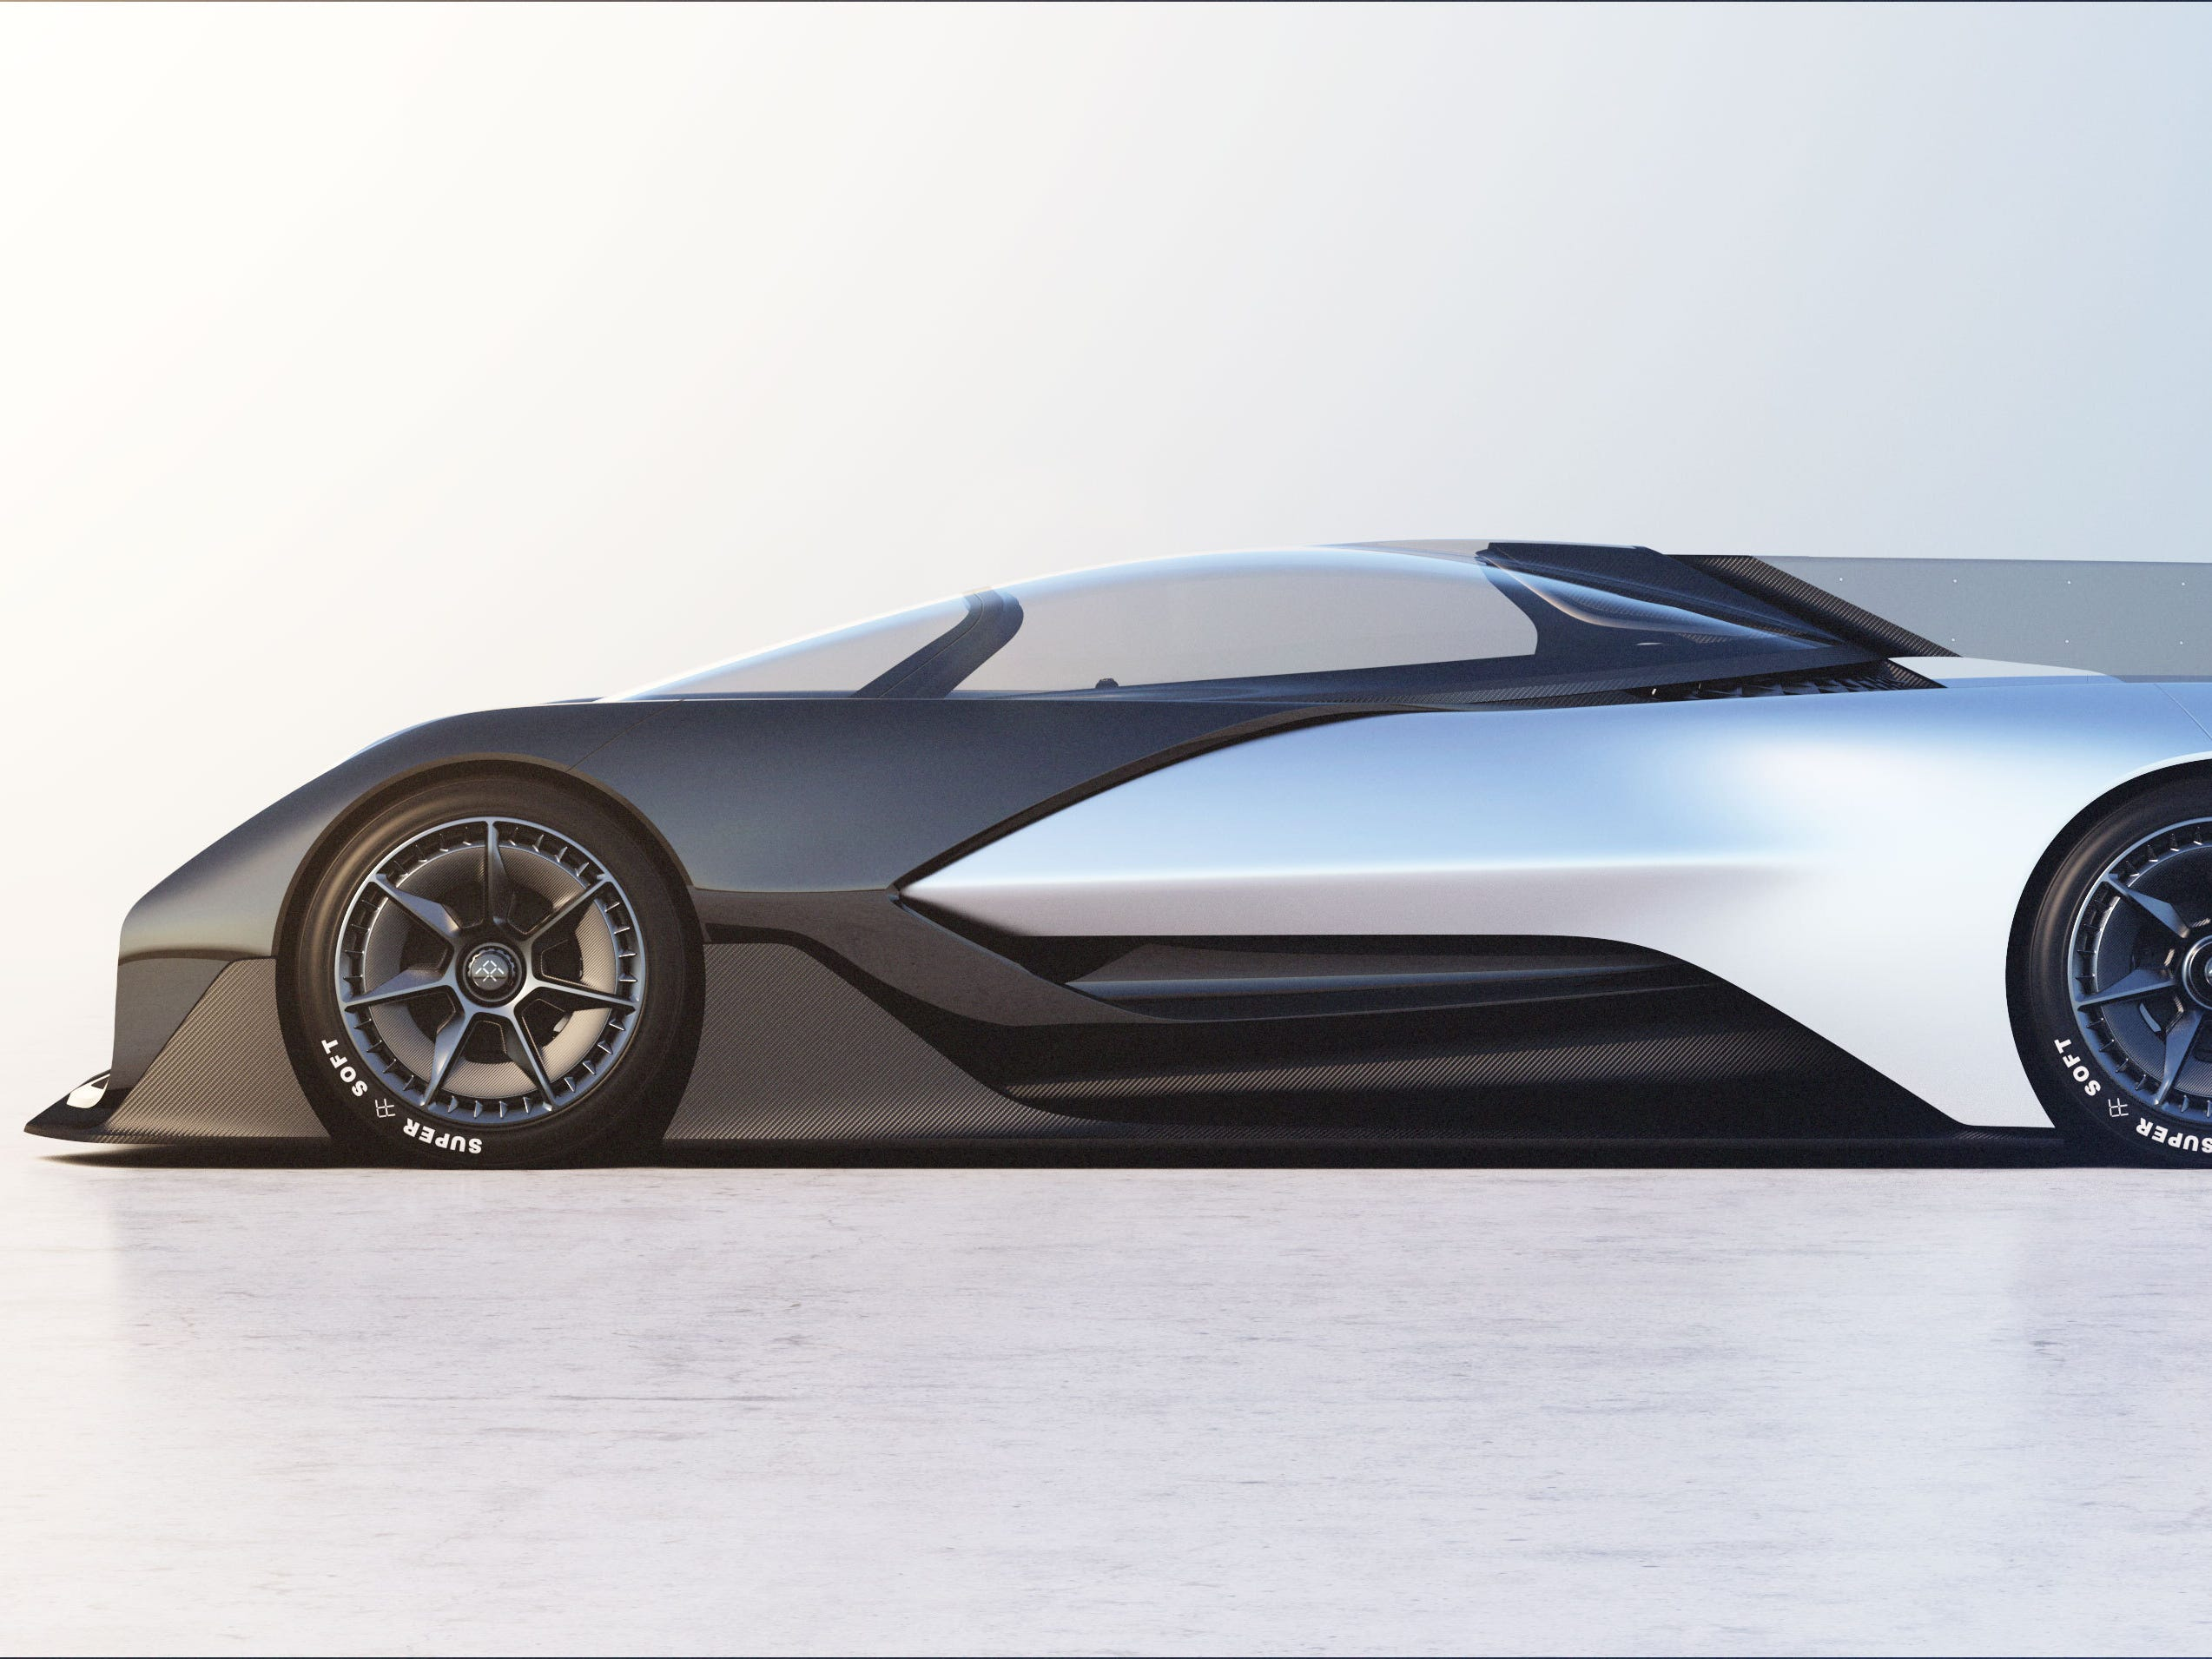 The Faraday Future electric concept car.